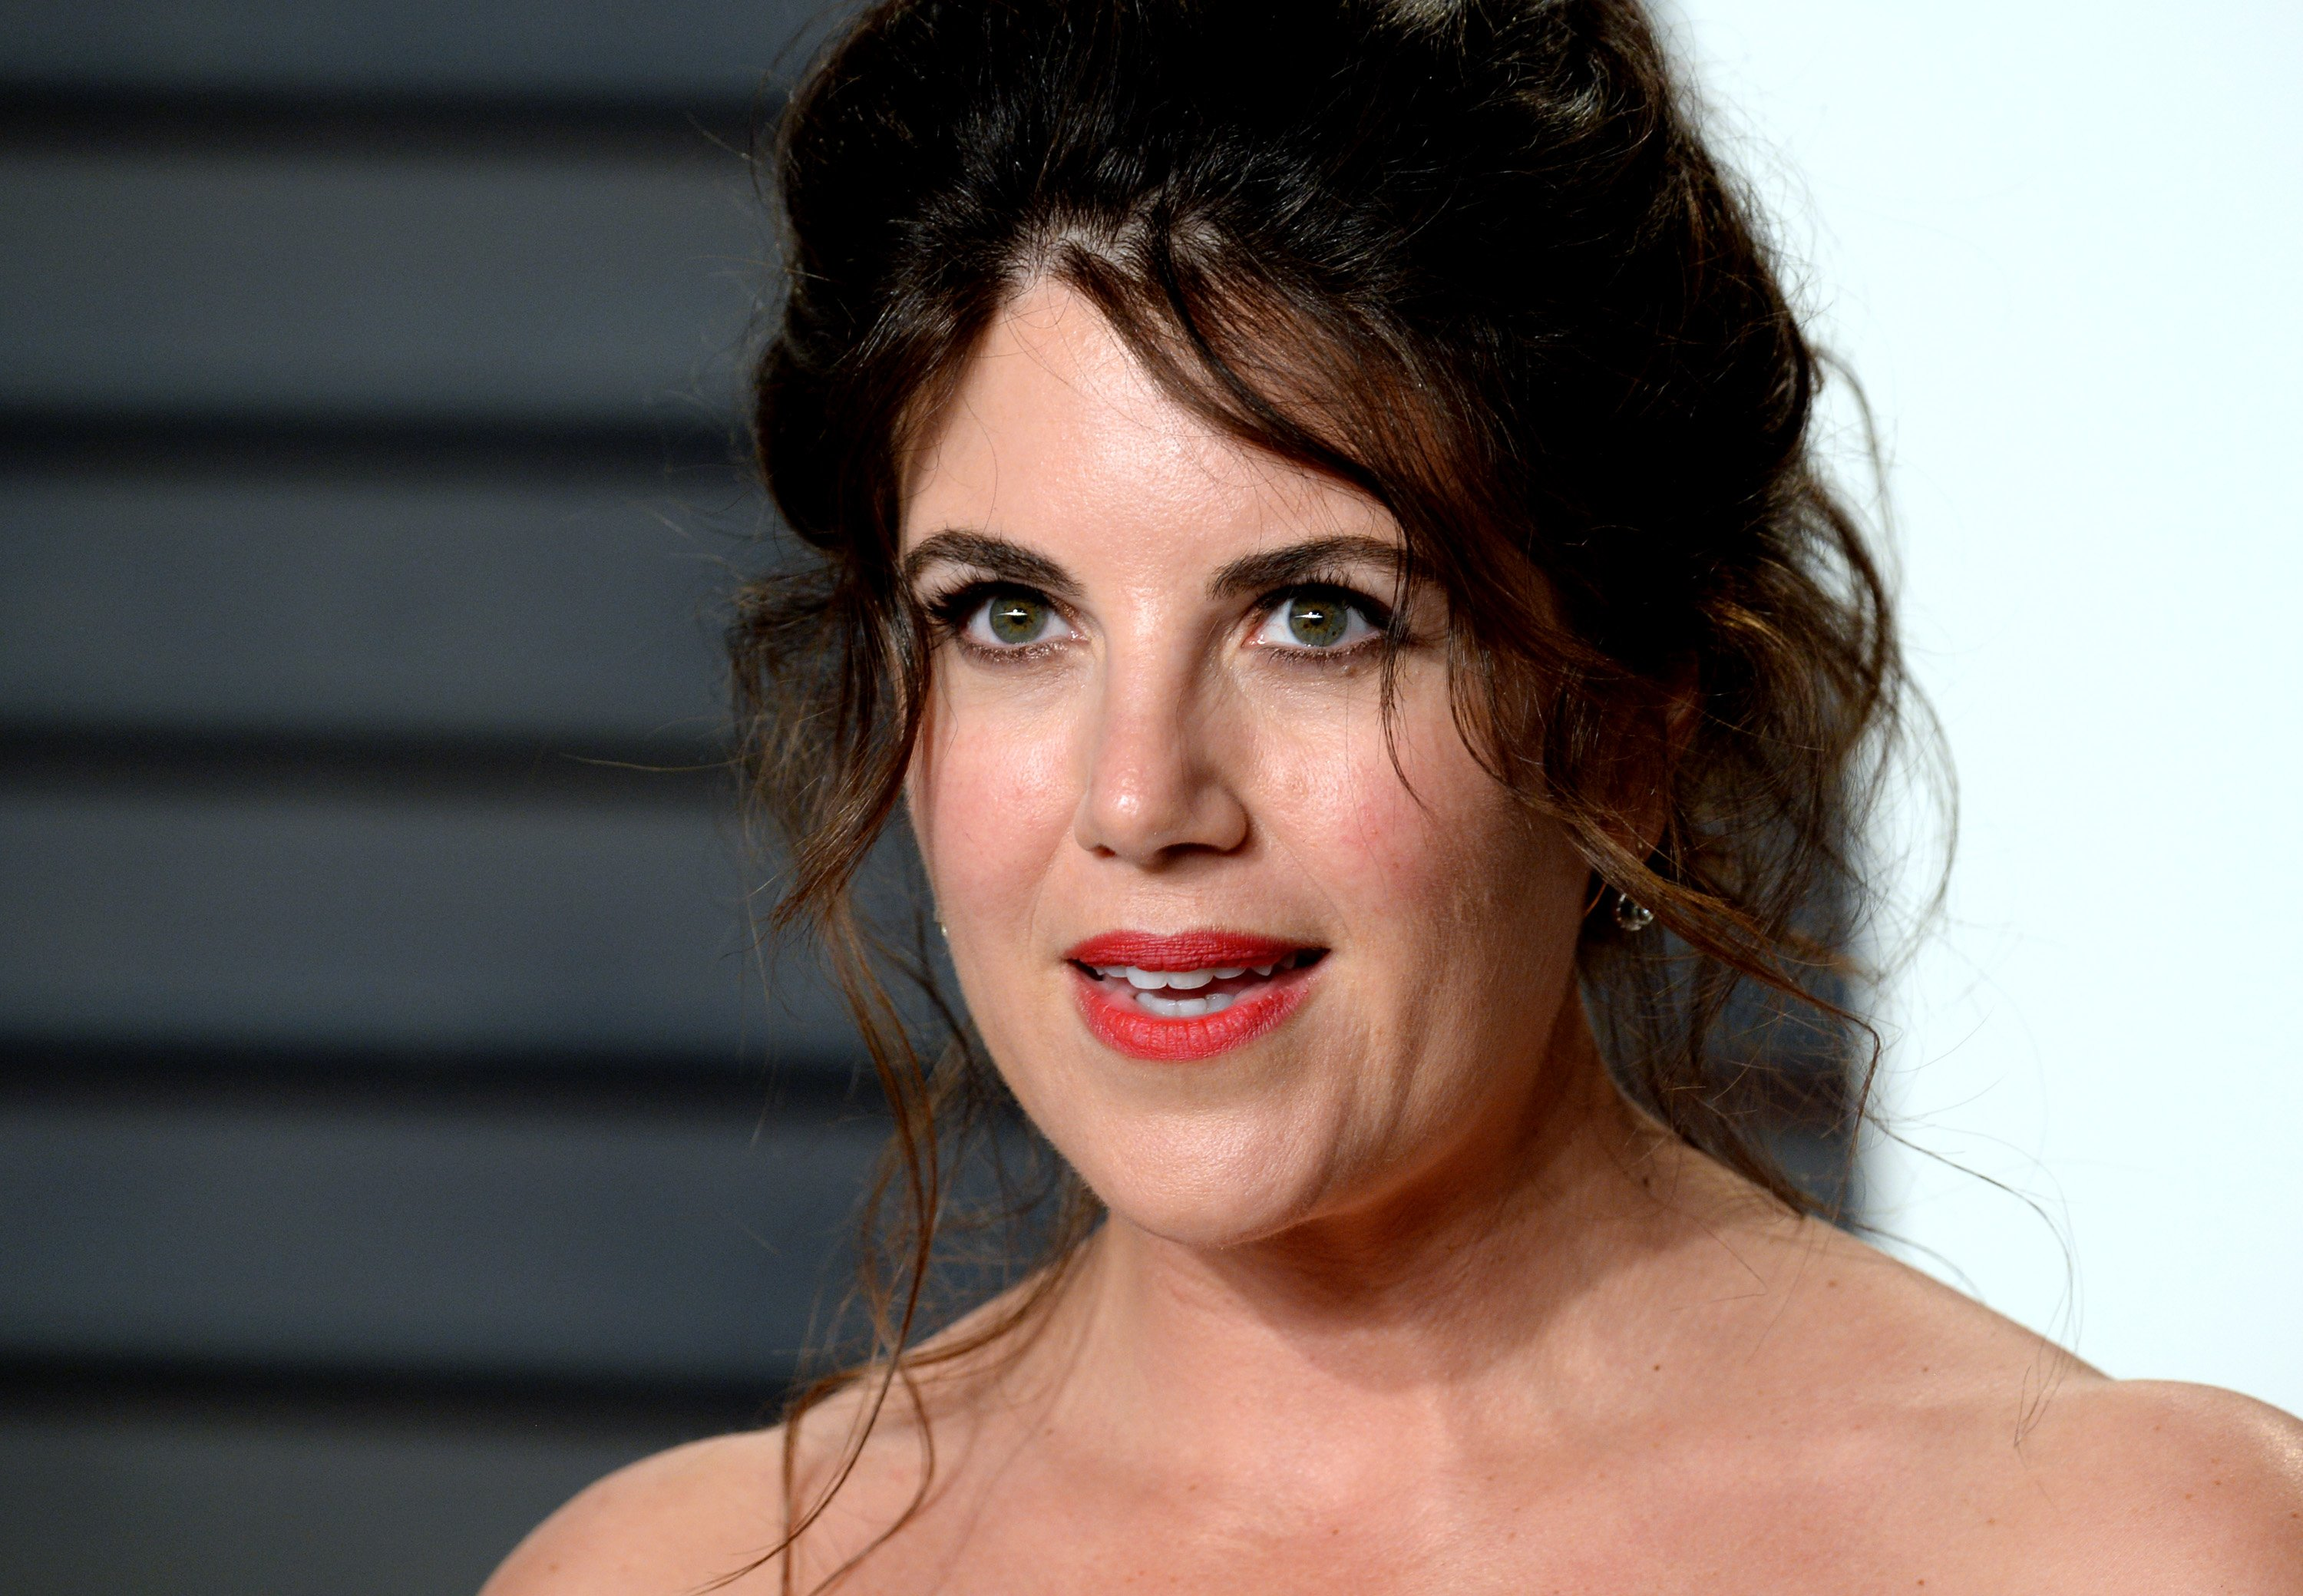 Television personality, activist, and Fashion designer, Monica Lewinsky | Photo: Getty Images